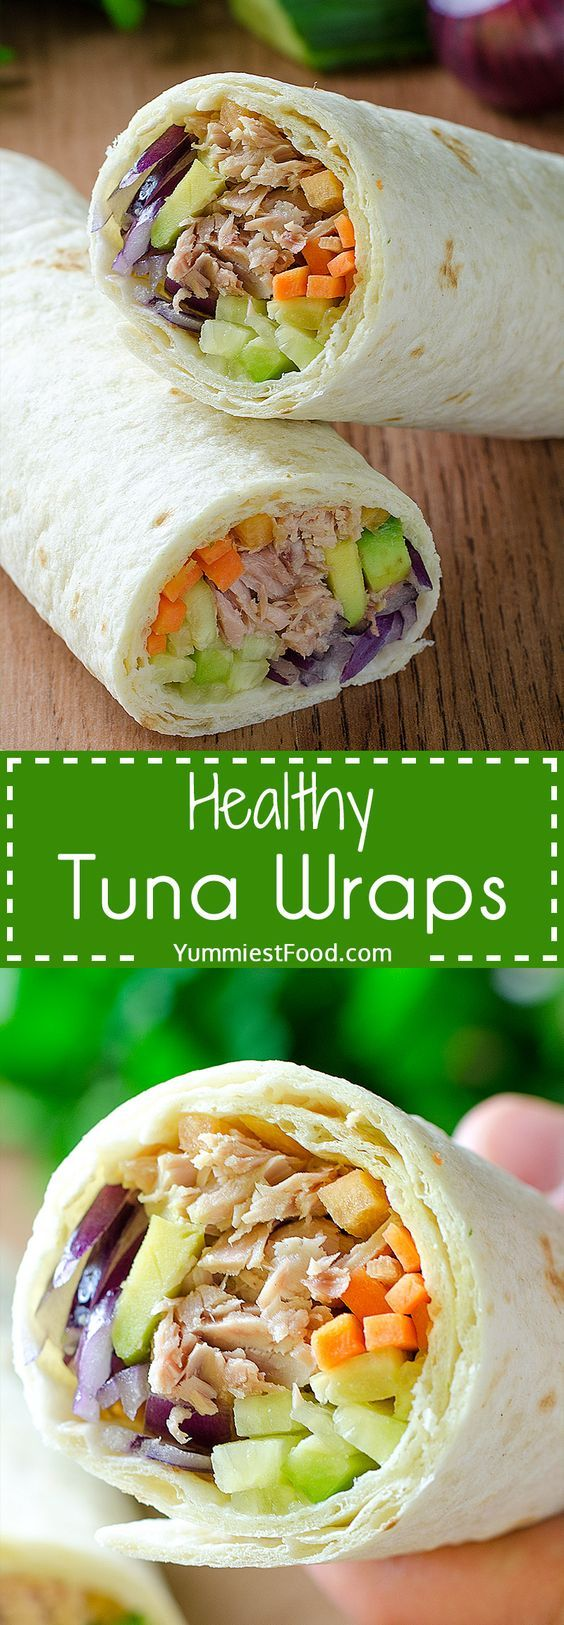 Healthy Tuna Wraps - This tasty recipe will satisfy your appetite! So delicious and low in calories! For 10 minutes you can make so healthy, easy and tasty recipe - Healthy Tuna Wraps!